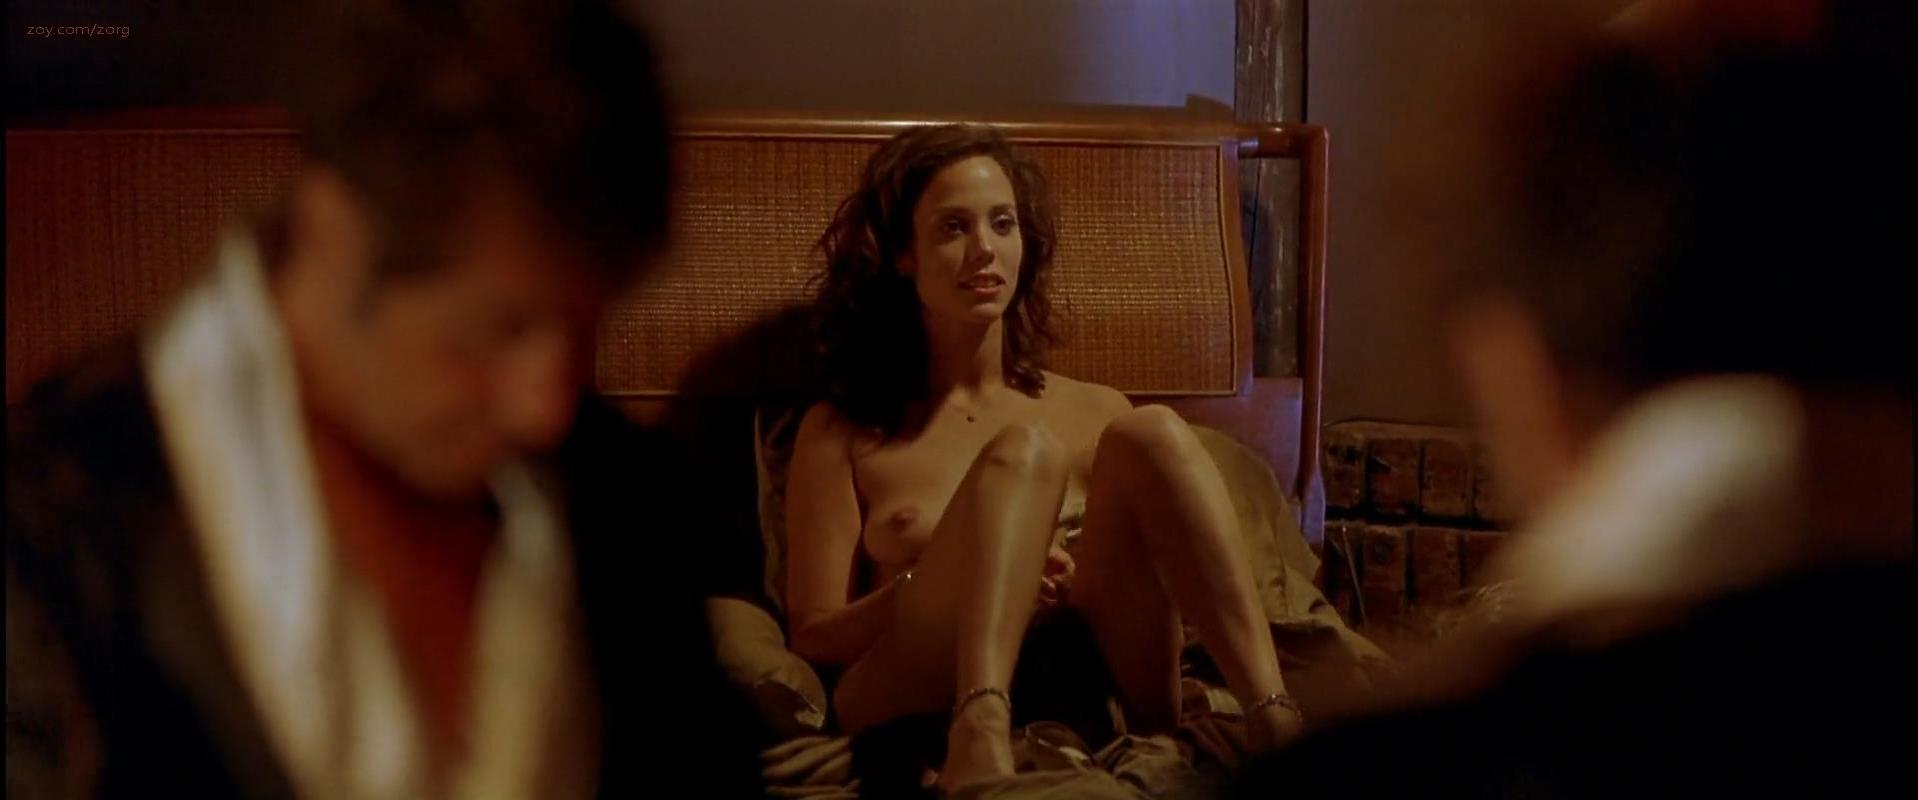 Elizabeth Berkley nude - Any Given Sunday (1999)